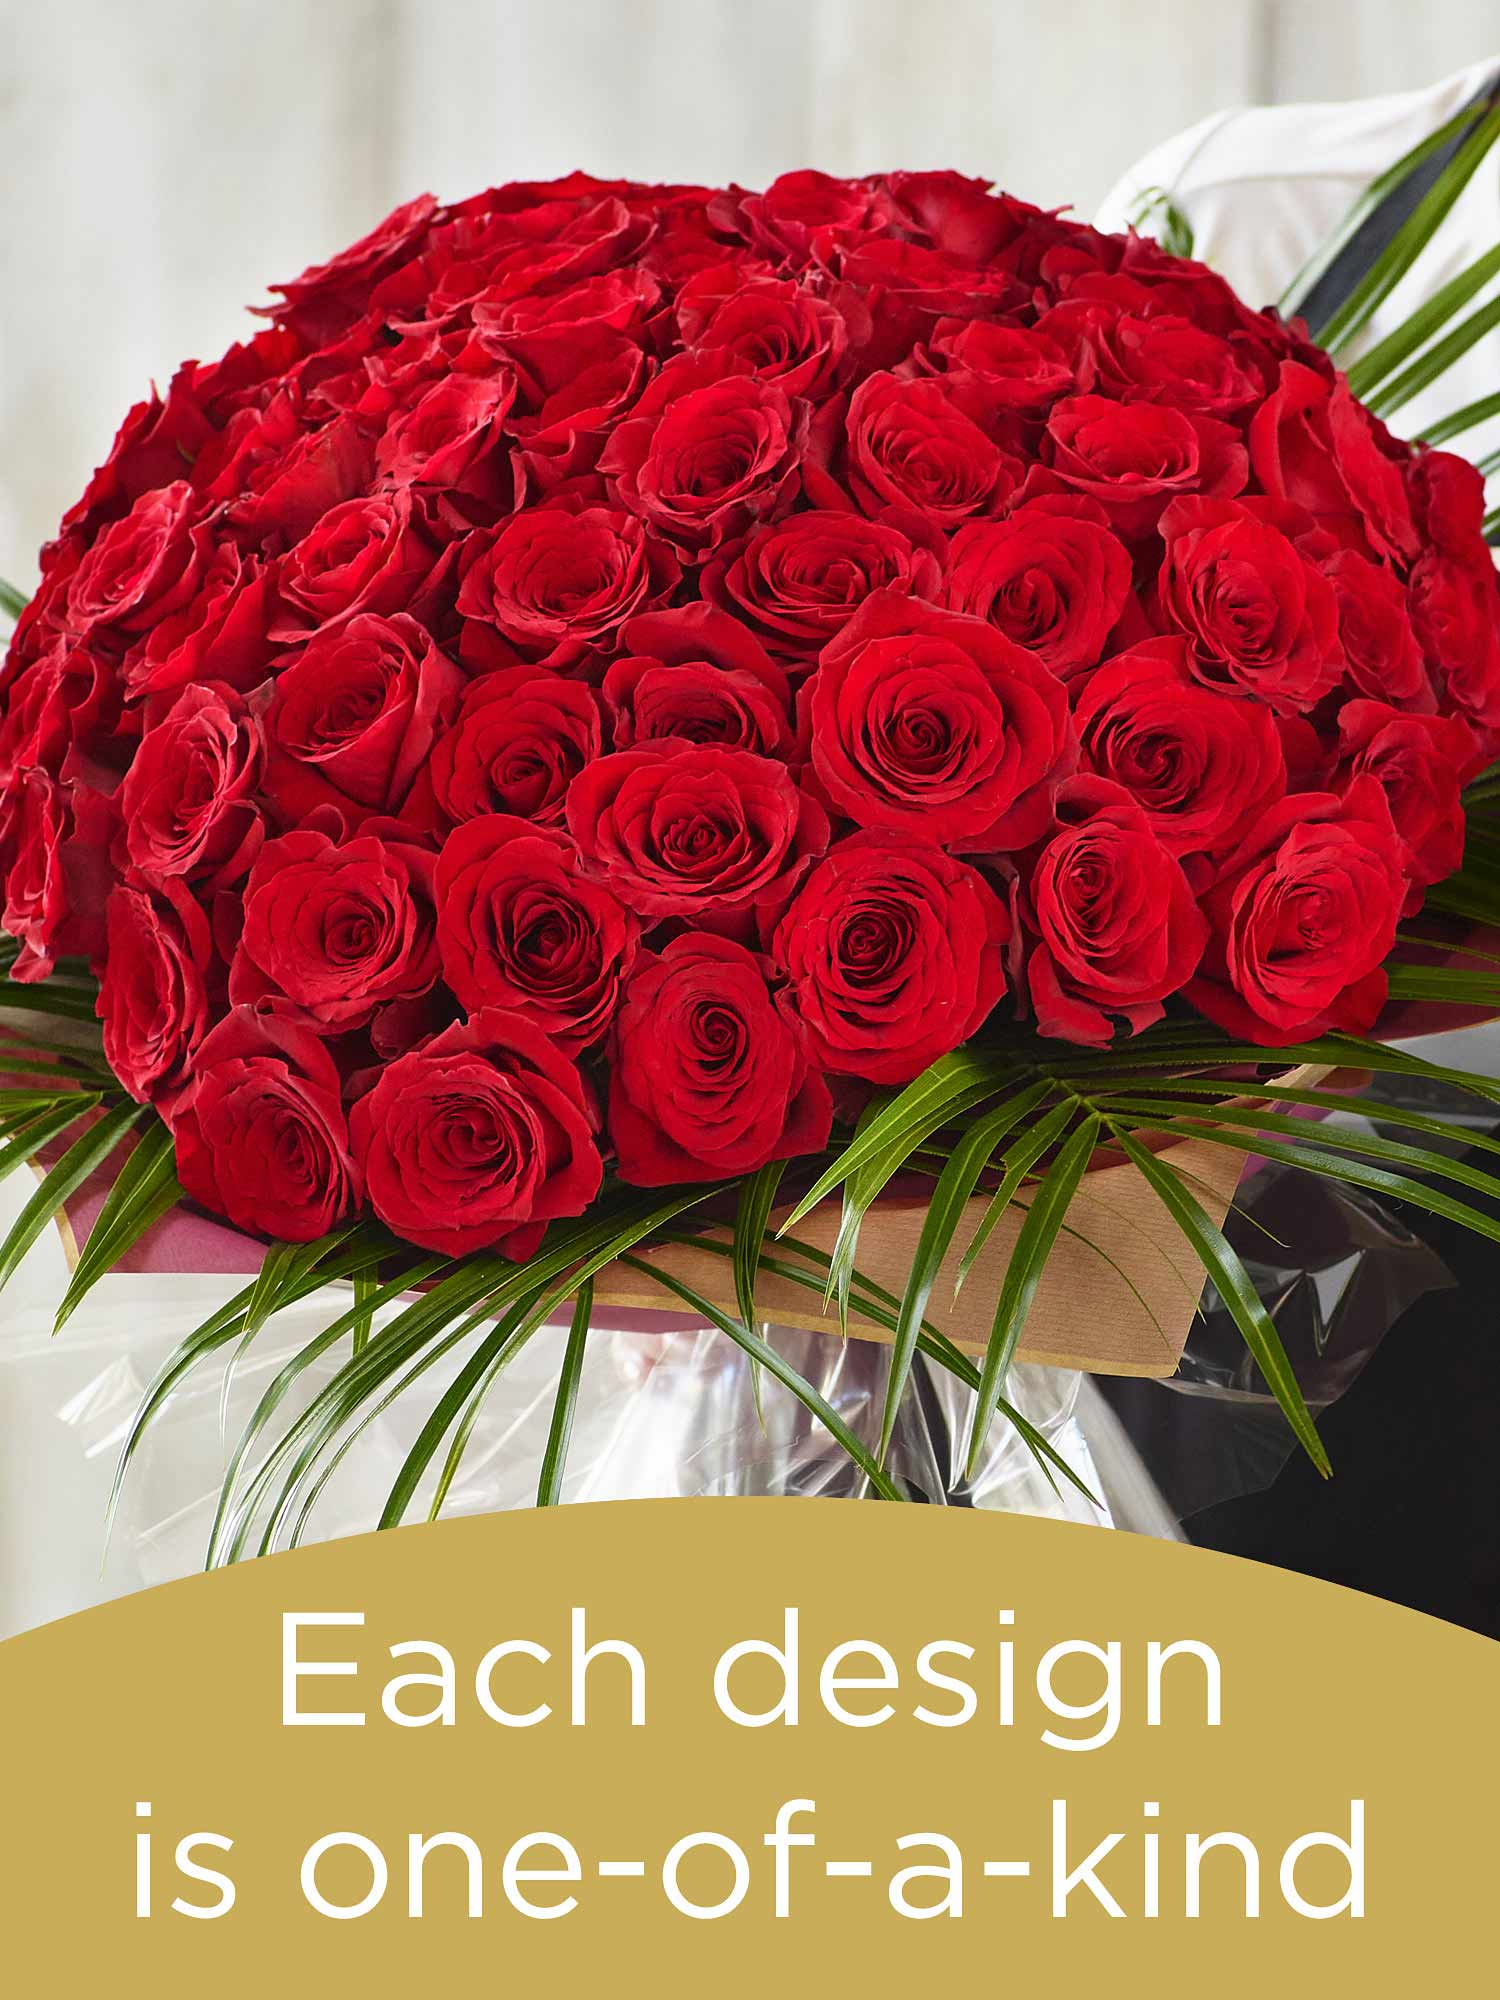 100 red rose hand-tied bouquet Flower Arrangement